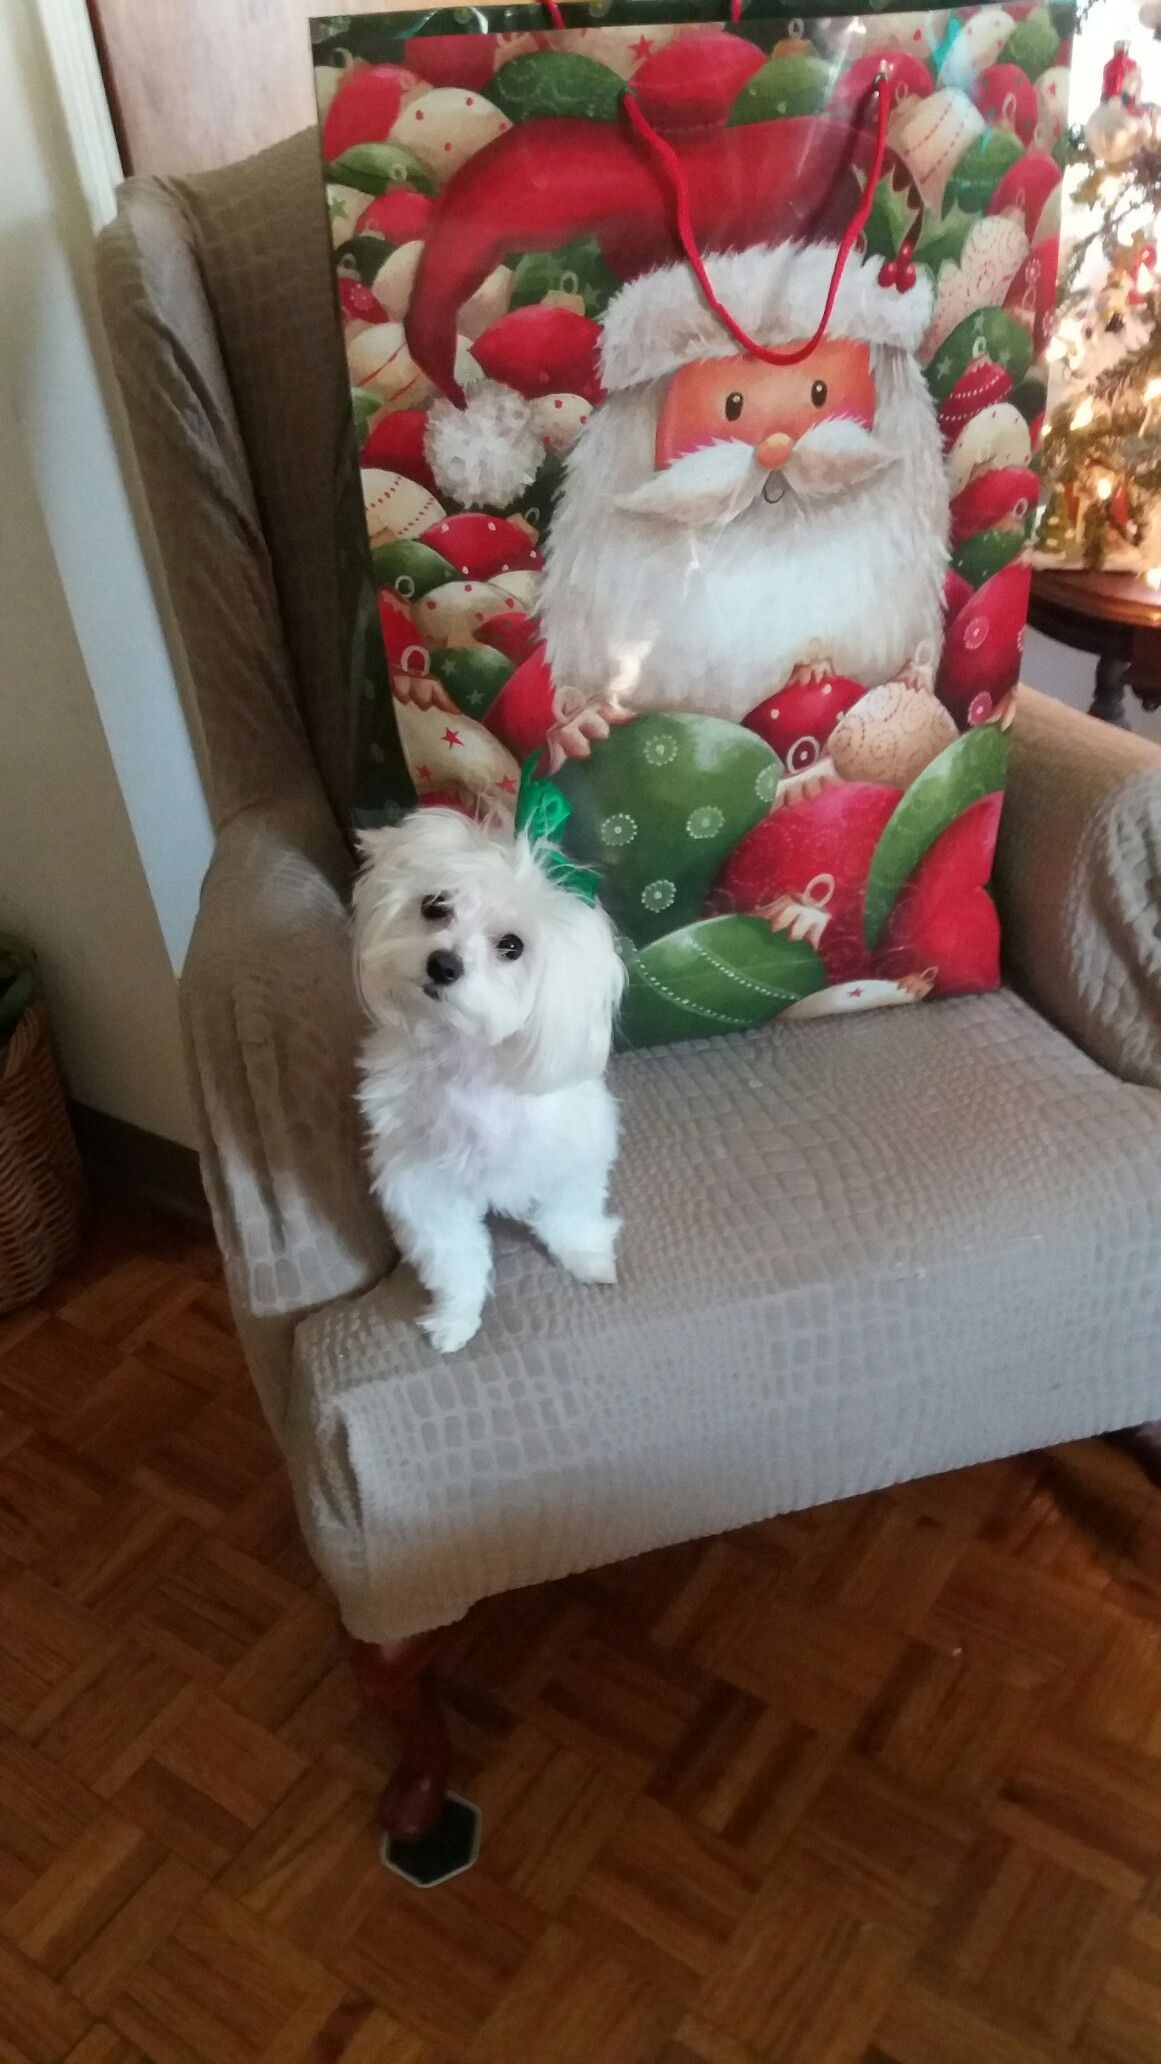 Come on Mummy, let me so what Santa brought me!!!!!!